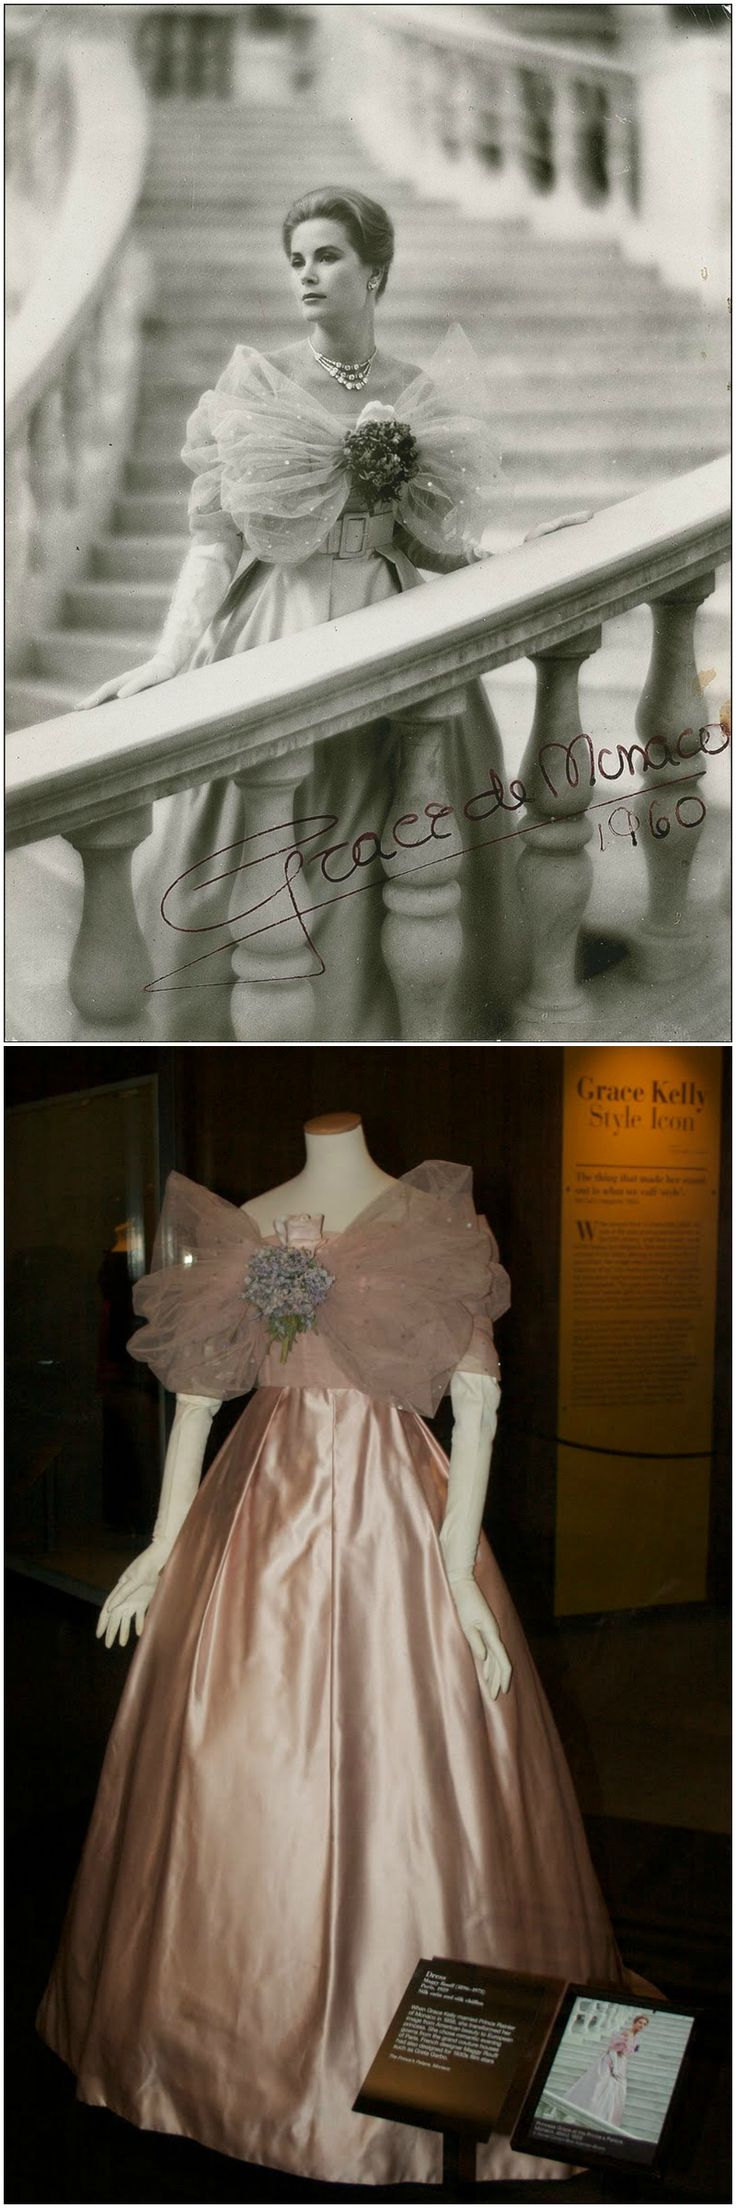 """Dress by Maggy Rouff, Paris, 1959, silk satin and silk chiffon. Worn by Princess Grace of Monaco, for a photograph taken on the steps of the Prince's Palace, around 1959 or 1960 (see top photo: © Howell Conant, via gracefilm Tumblr). Bottom photo: Installation view of the dress from the """"Grace Kelly: Style Icon"""" exhibition at the V&A, London (credit: My 'Richard Curtis' London Blog)."""